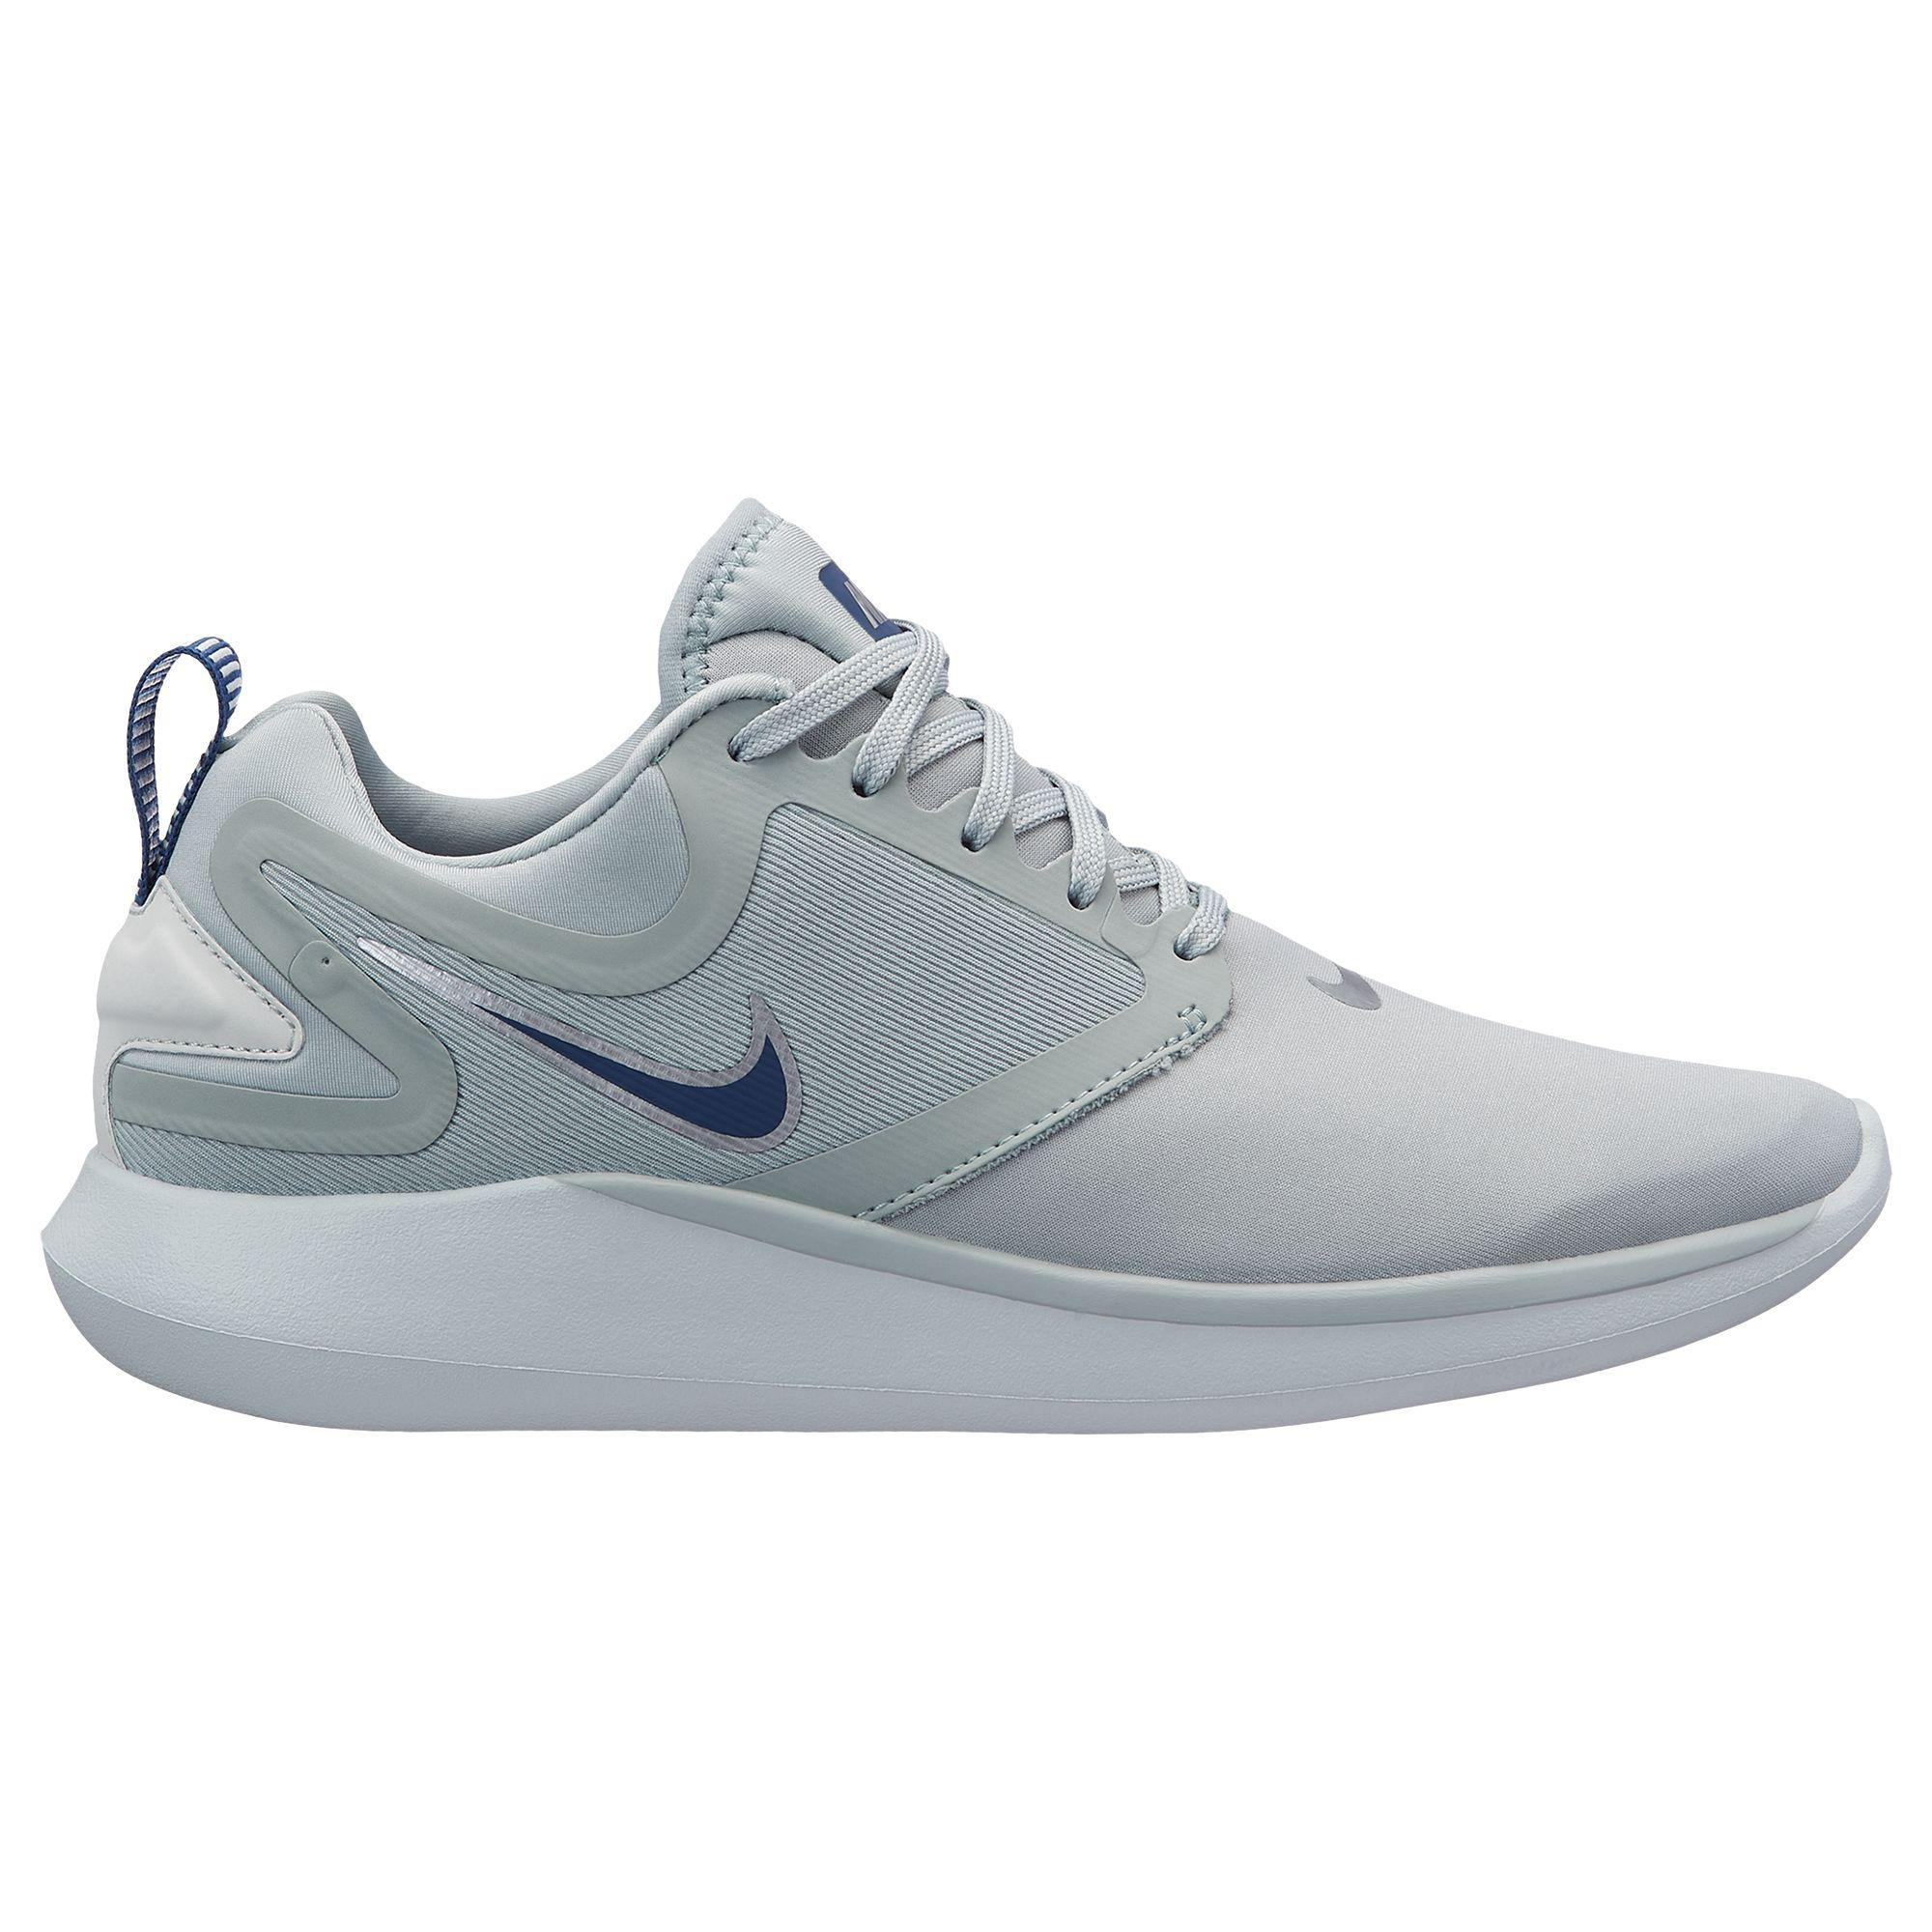 ca336dc70b9 Nike Lunarsolo Women s Running Shoes in Gray - Lyst